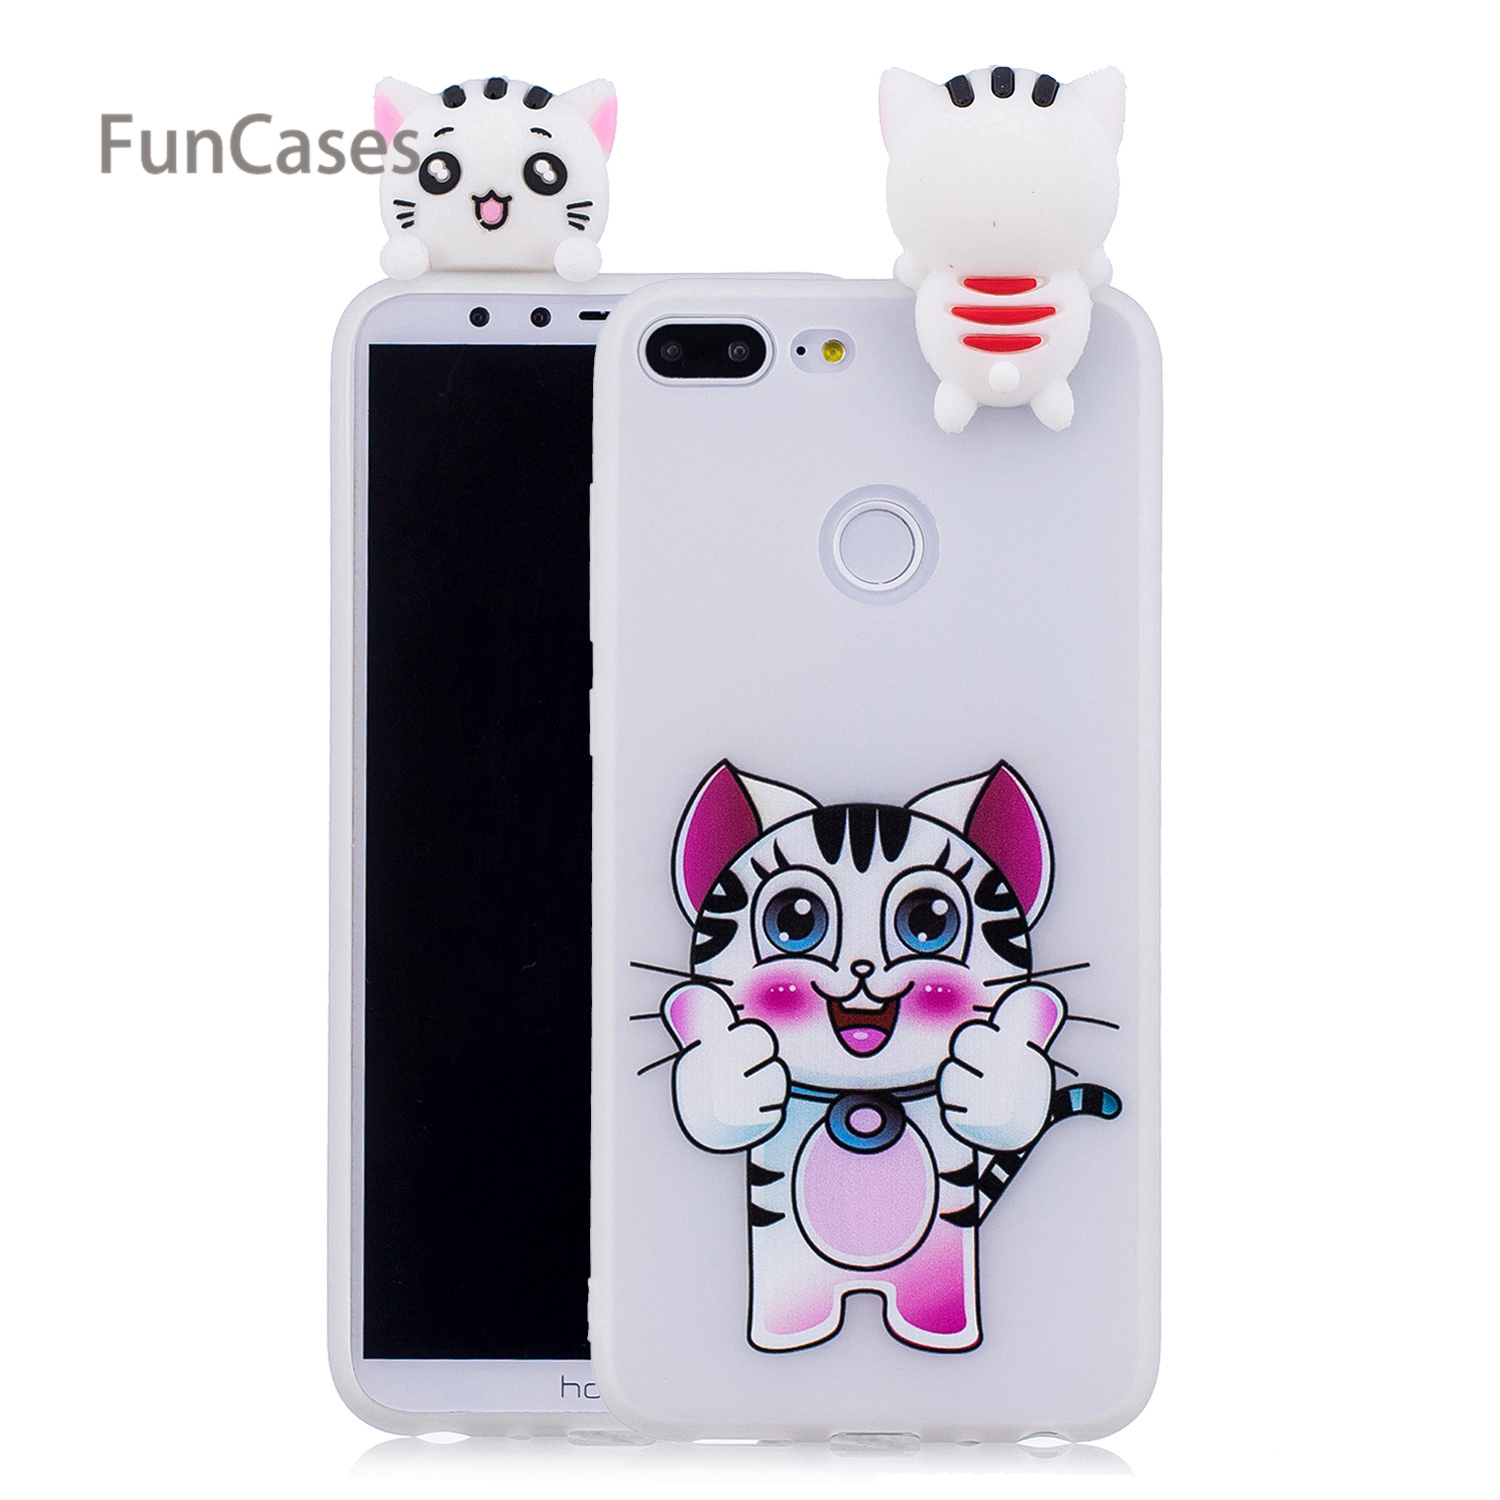 Cute Unicorn <font><b>Phone</b></font> <font><b>Case</b></font> sFor Estuche Huawei Honor 9 Lite Soft Silicone <font><b>Phone</b></font> <font><b>Case</b></font> Capa <font><b>Phone</b></font> <font><b>Case</b></font> Huawei Ascend Honor 9 Lite